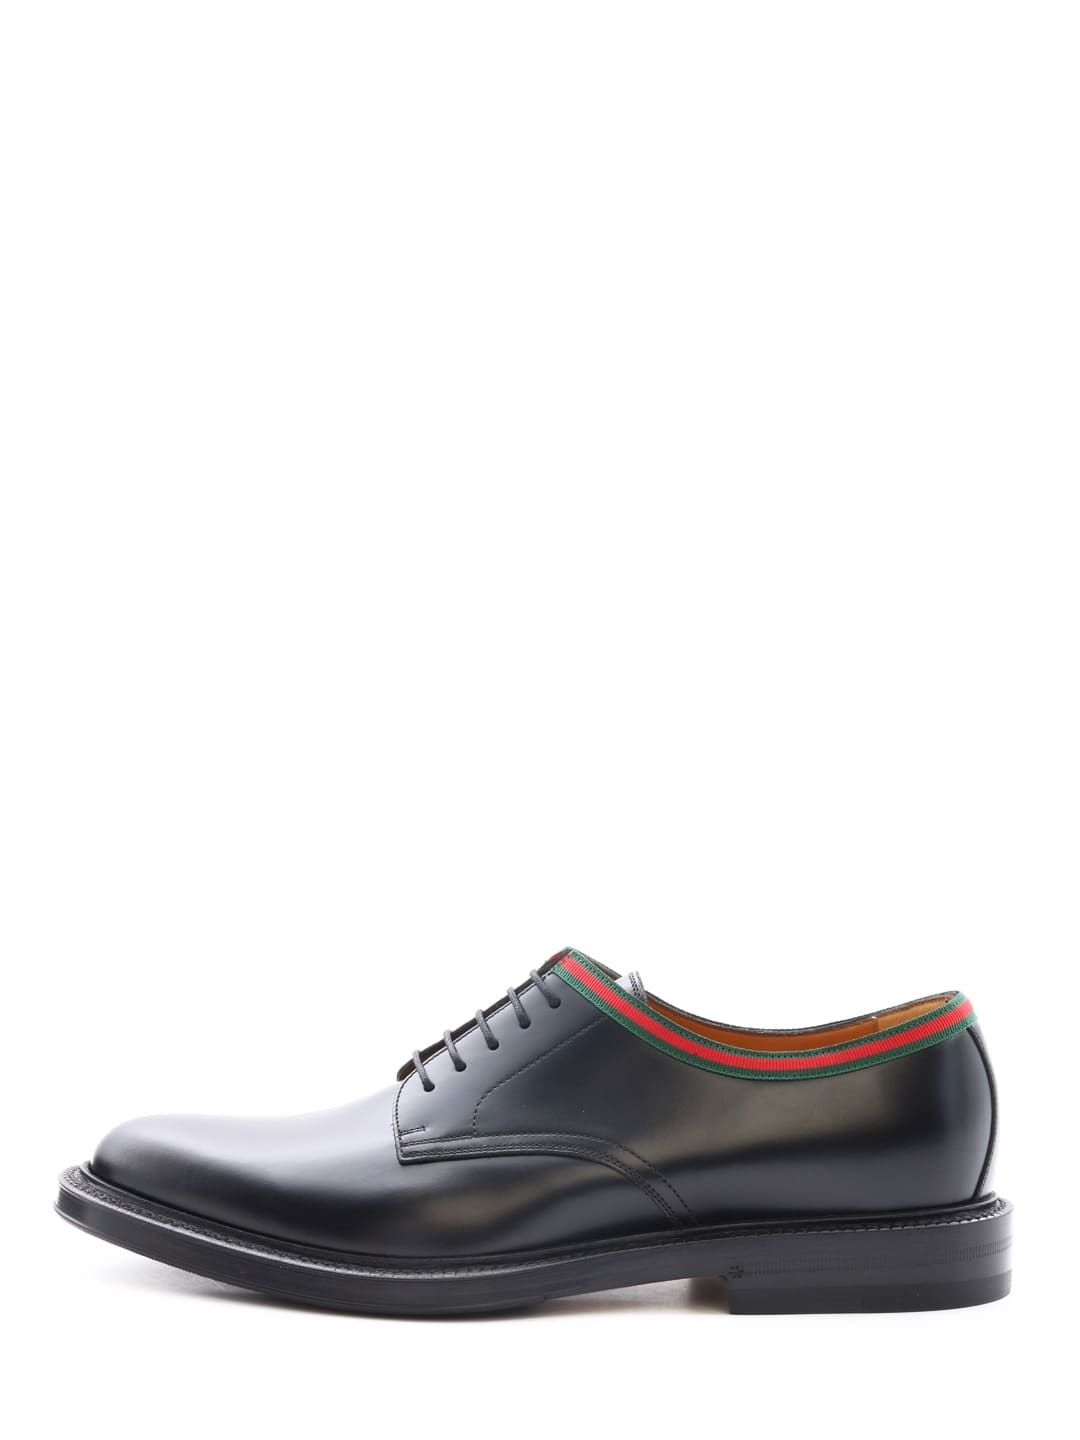 Gucci Men S Beyond Leather Lace Up Shoes In Black Modesens Shoe Laces Leather And Lace Gucci Leather [ 1440 x 1080 Pixel ]